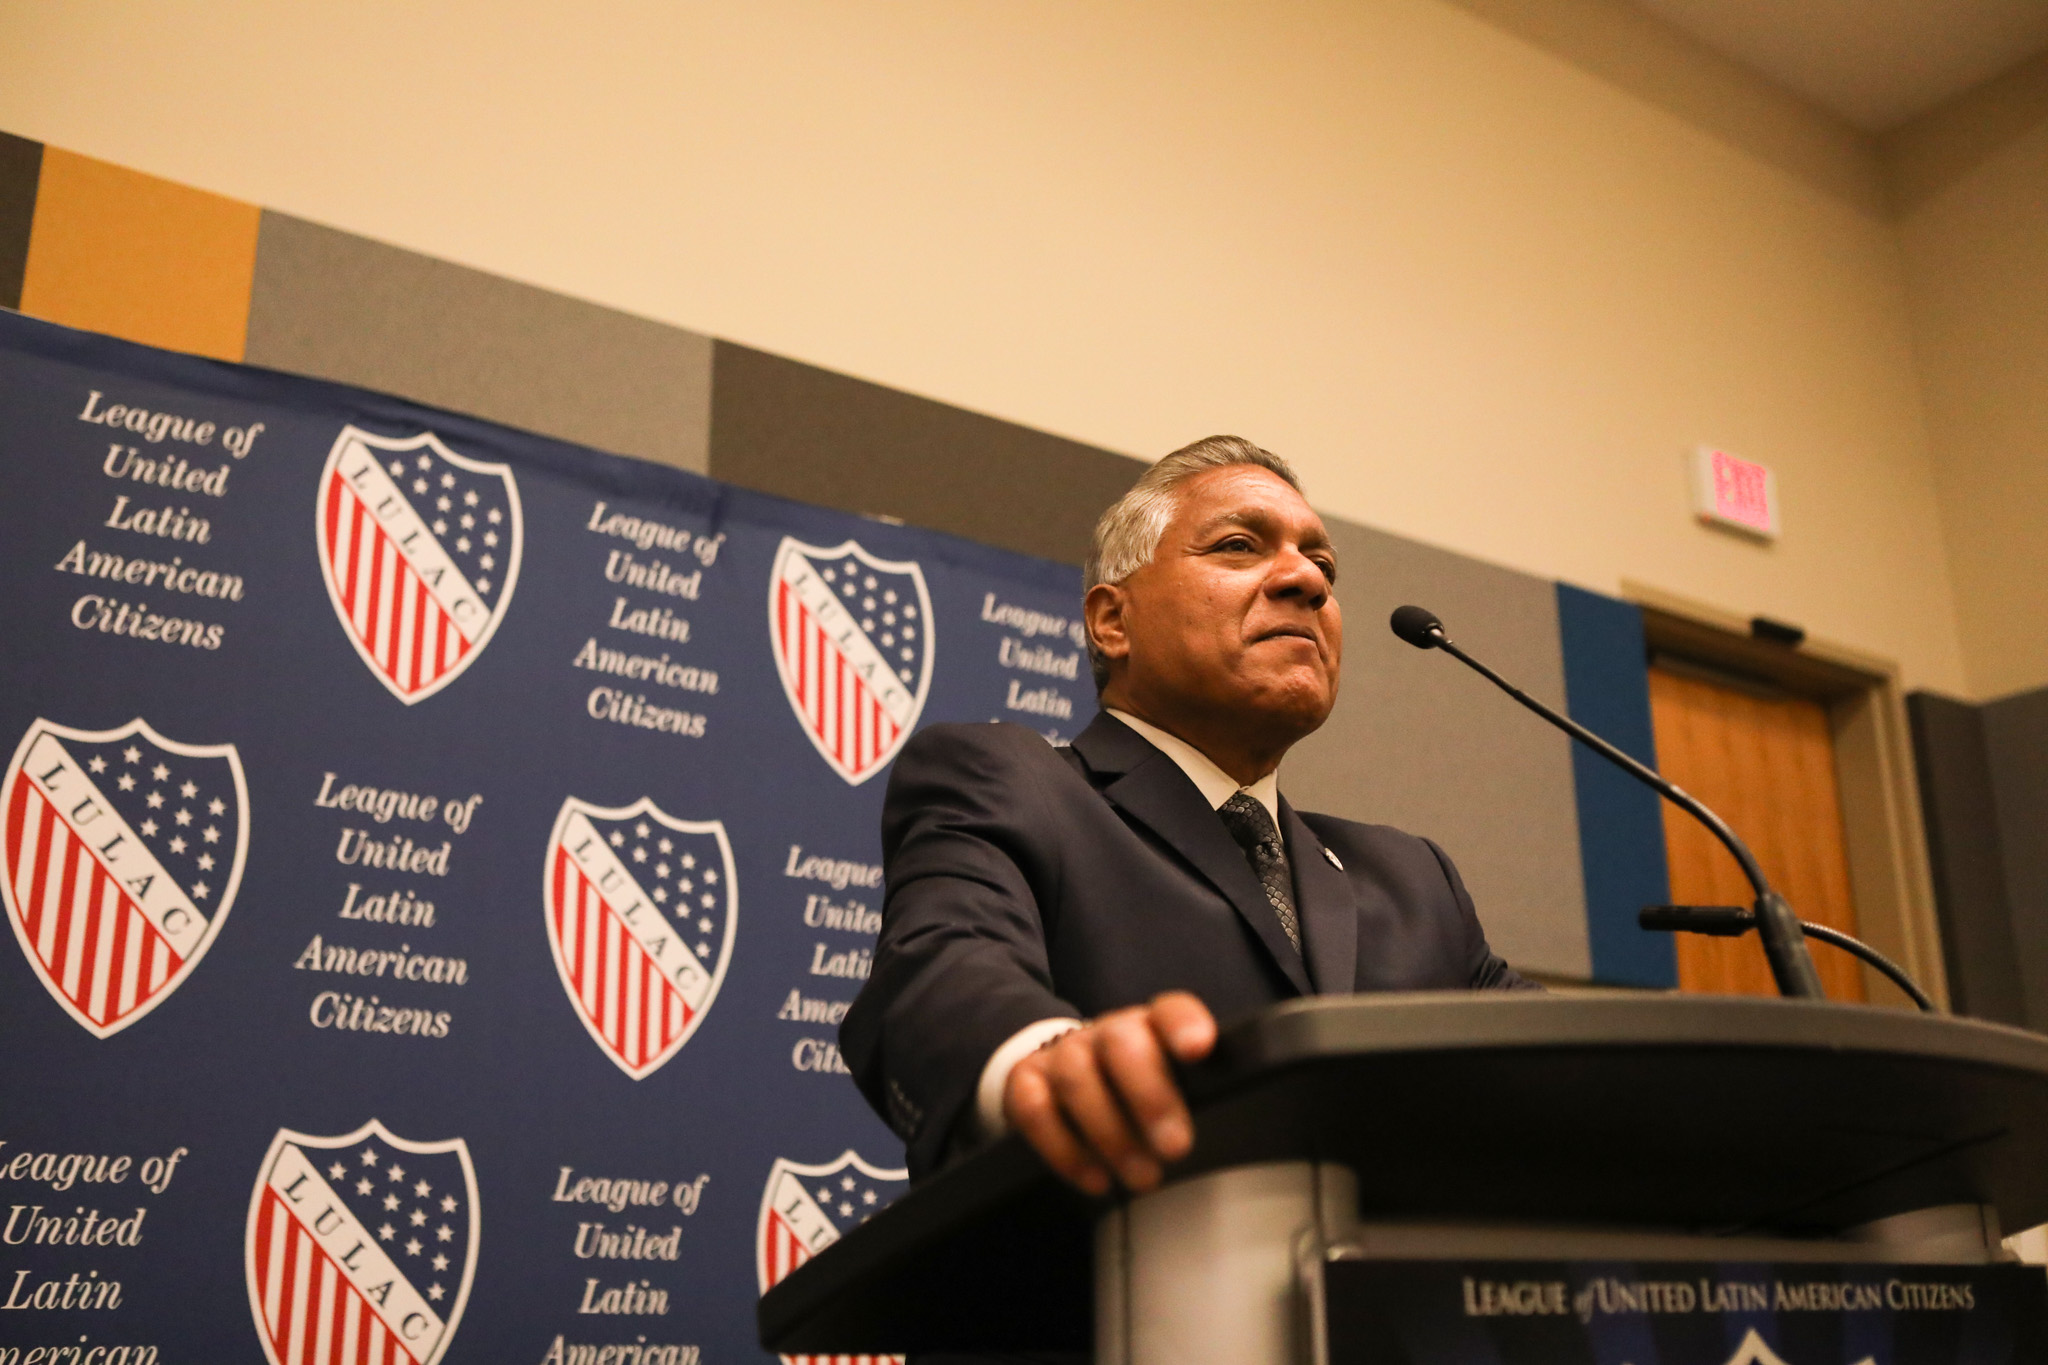 LULAC National General Council Luis Vera speaks at the press conference at the 2017 LULAC National Convention & Exposition.